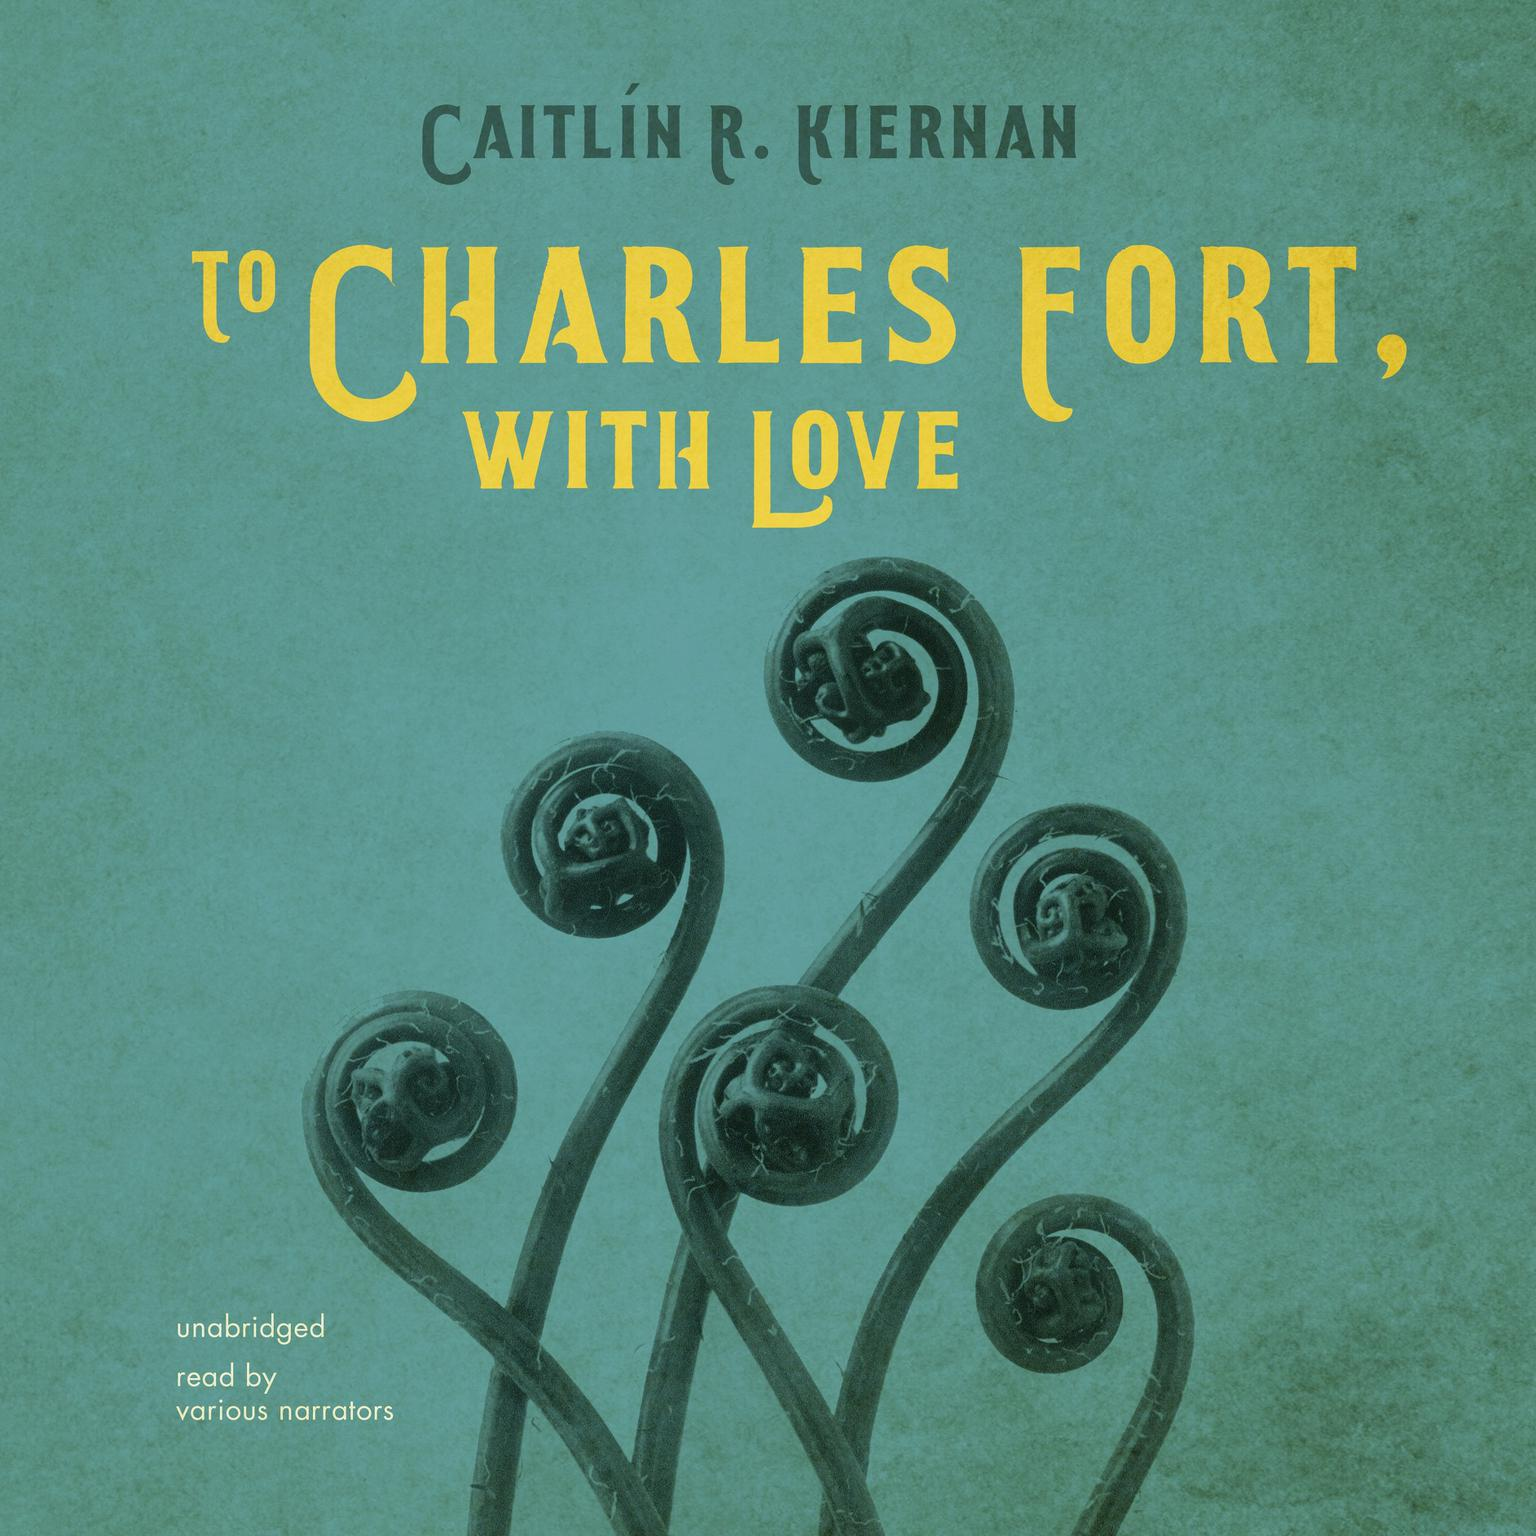 To Charles Fort, with Love Audiobook, by Caitlín R. Kiernan